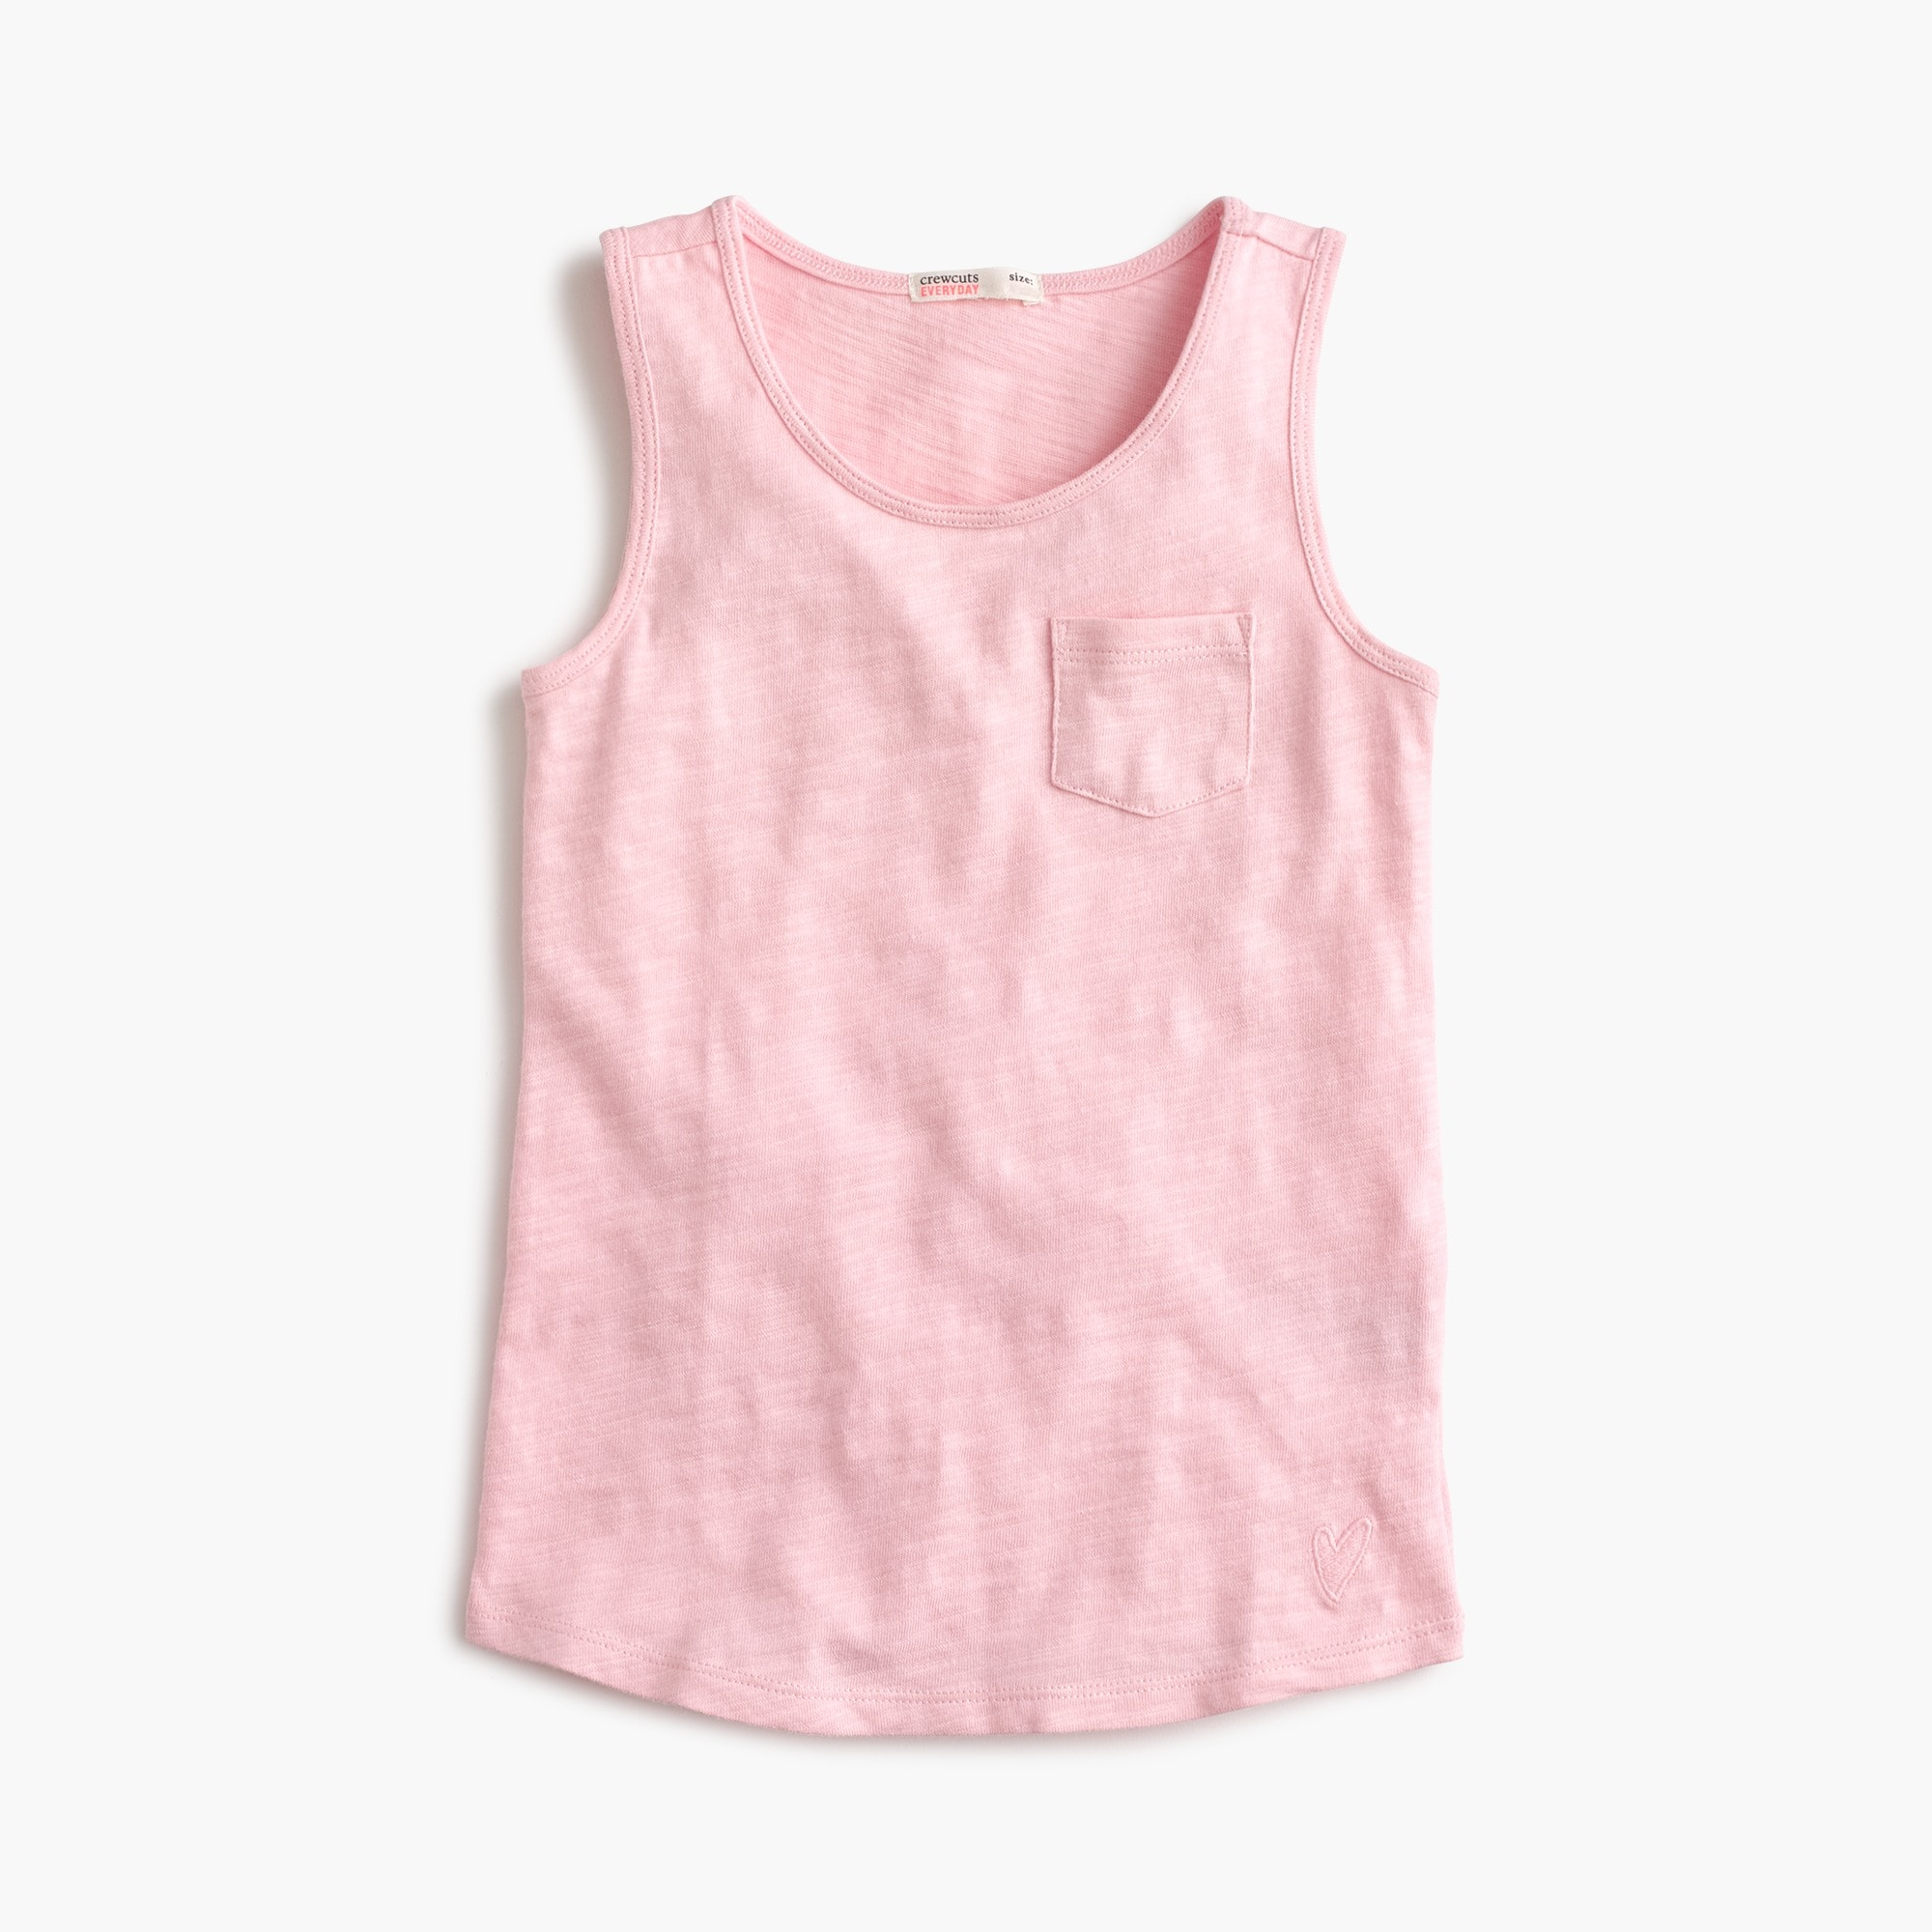 Image 1 for Girls' pocket tank top